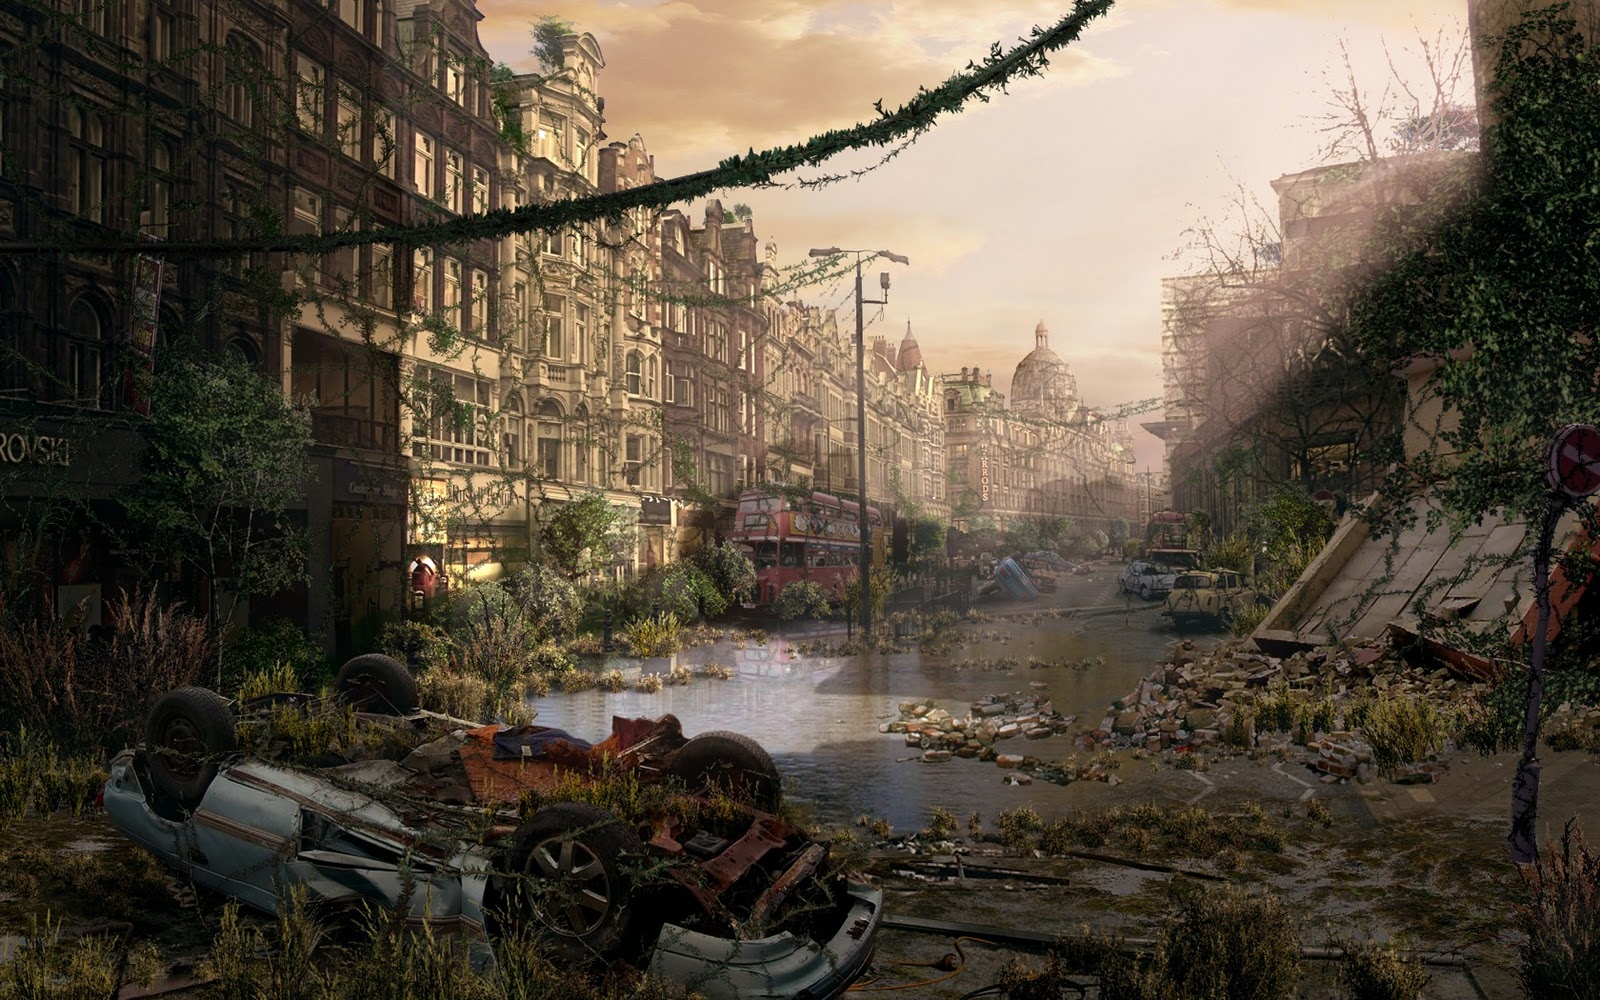 Mp off grid living post apocalyptic city views madison - Intire decrution ...